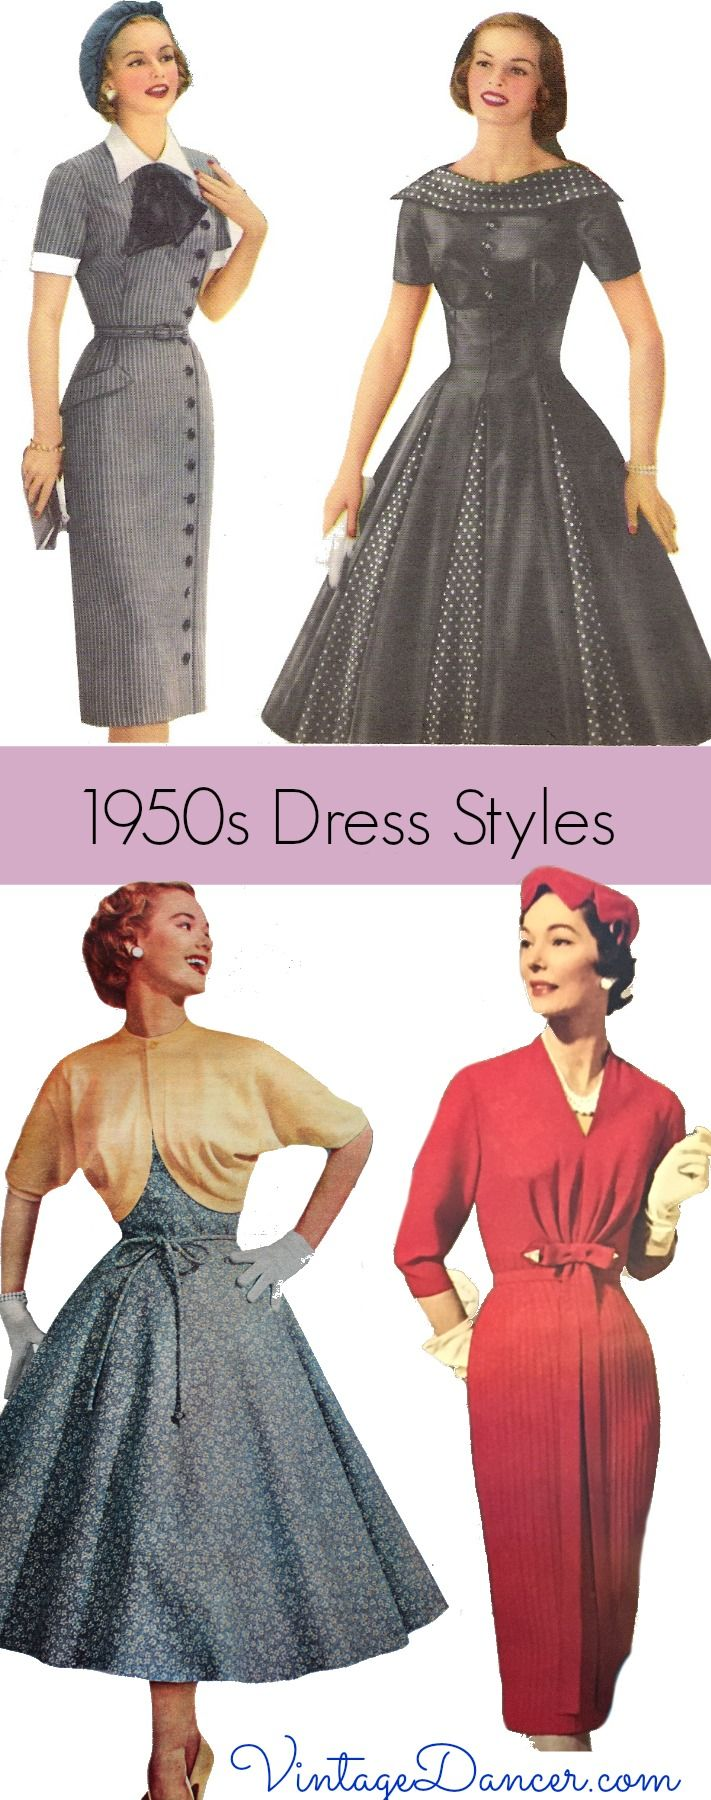 5b13b0ea1f1 1950s dress styles  Sheath or swing dresses were the predominant shapes of  fifties fashion. Learn more at VintageDancer.com